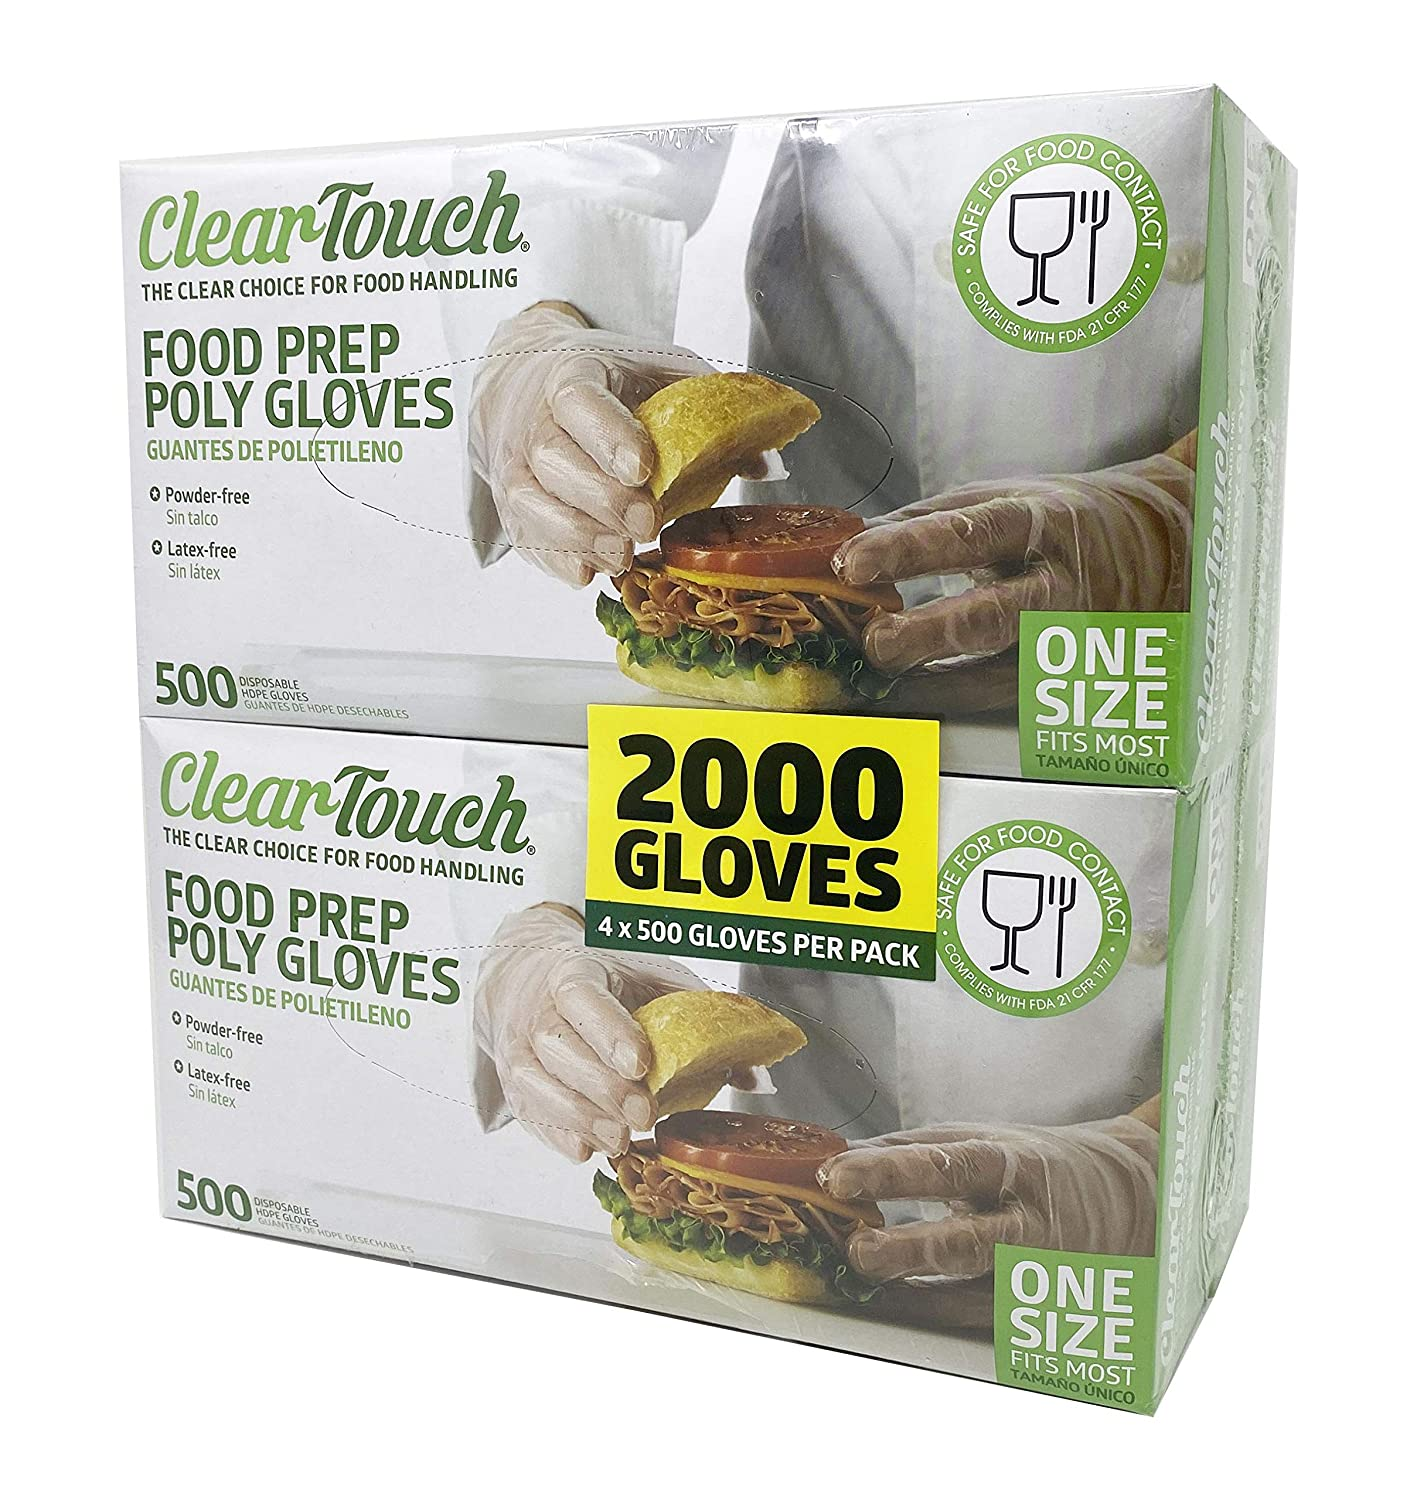 Medline Clear Touch Food Prep Poly Gloves, Latex and Powder Free, One Size Fits Most, (2000 Count), Model:CLE2000HDPE